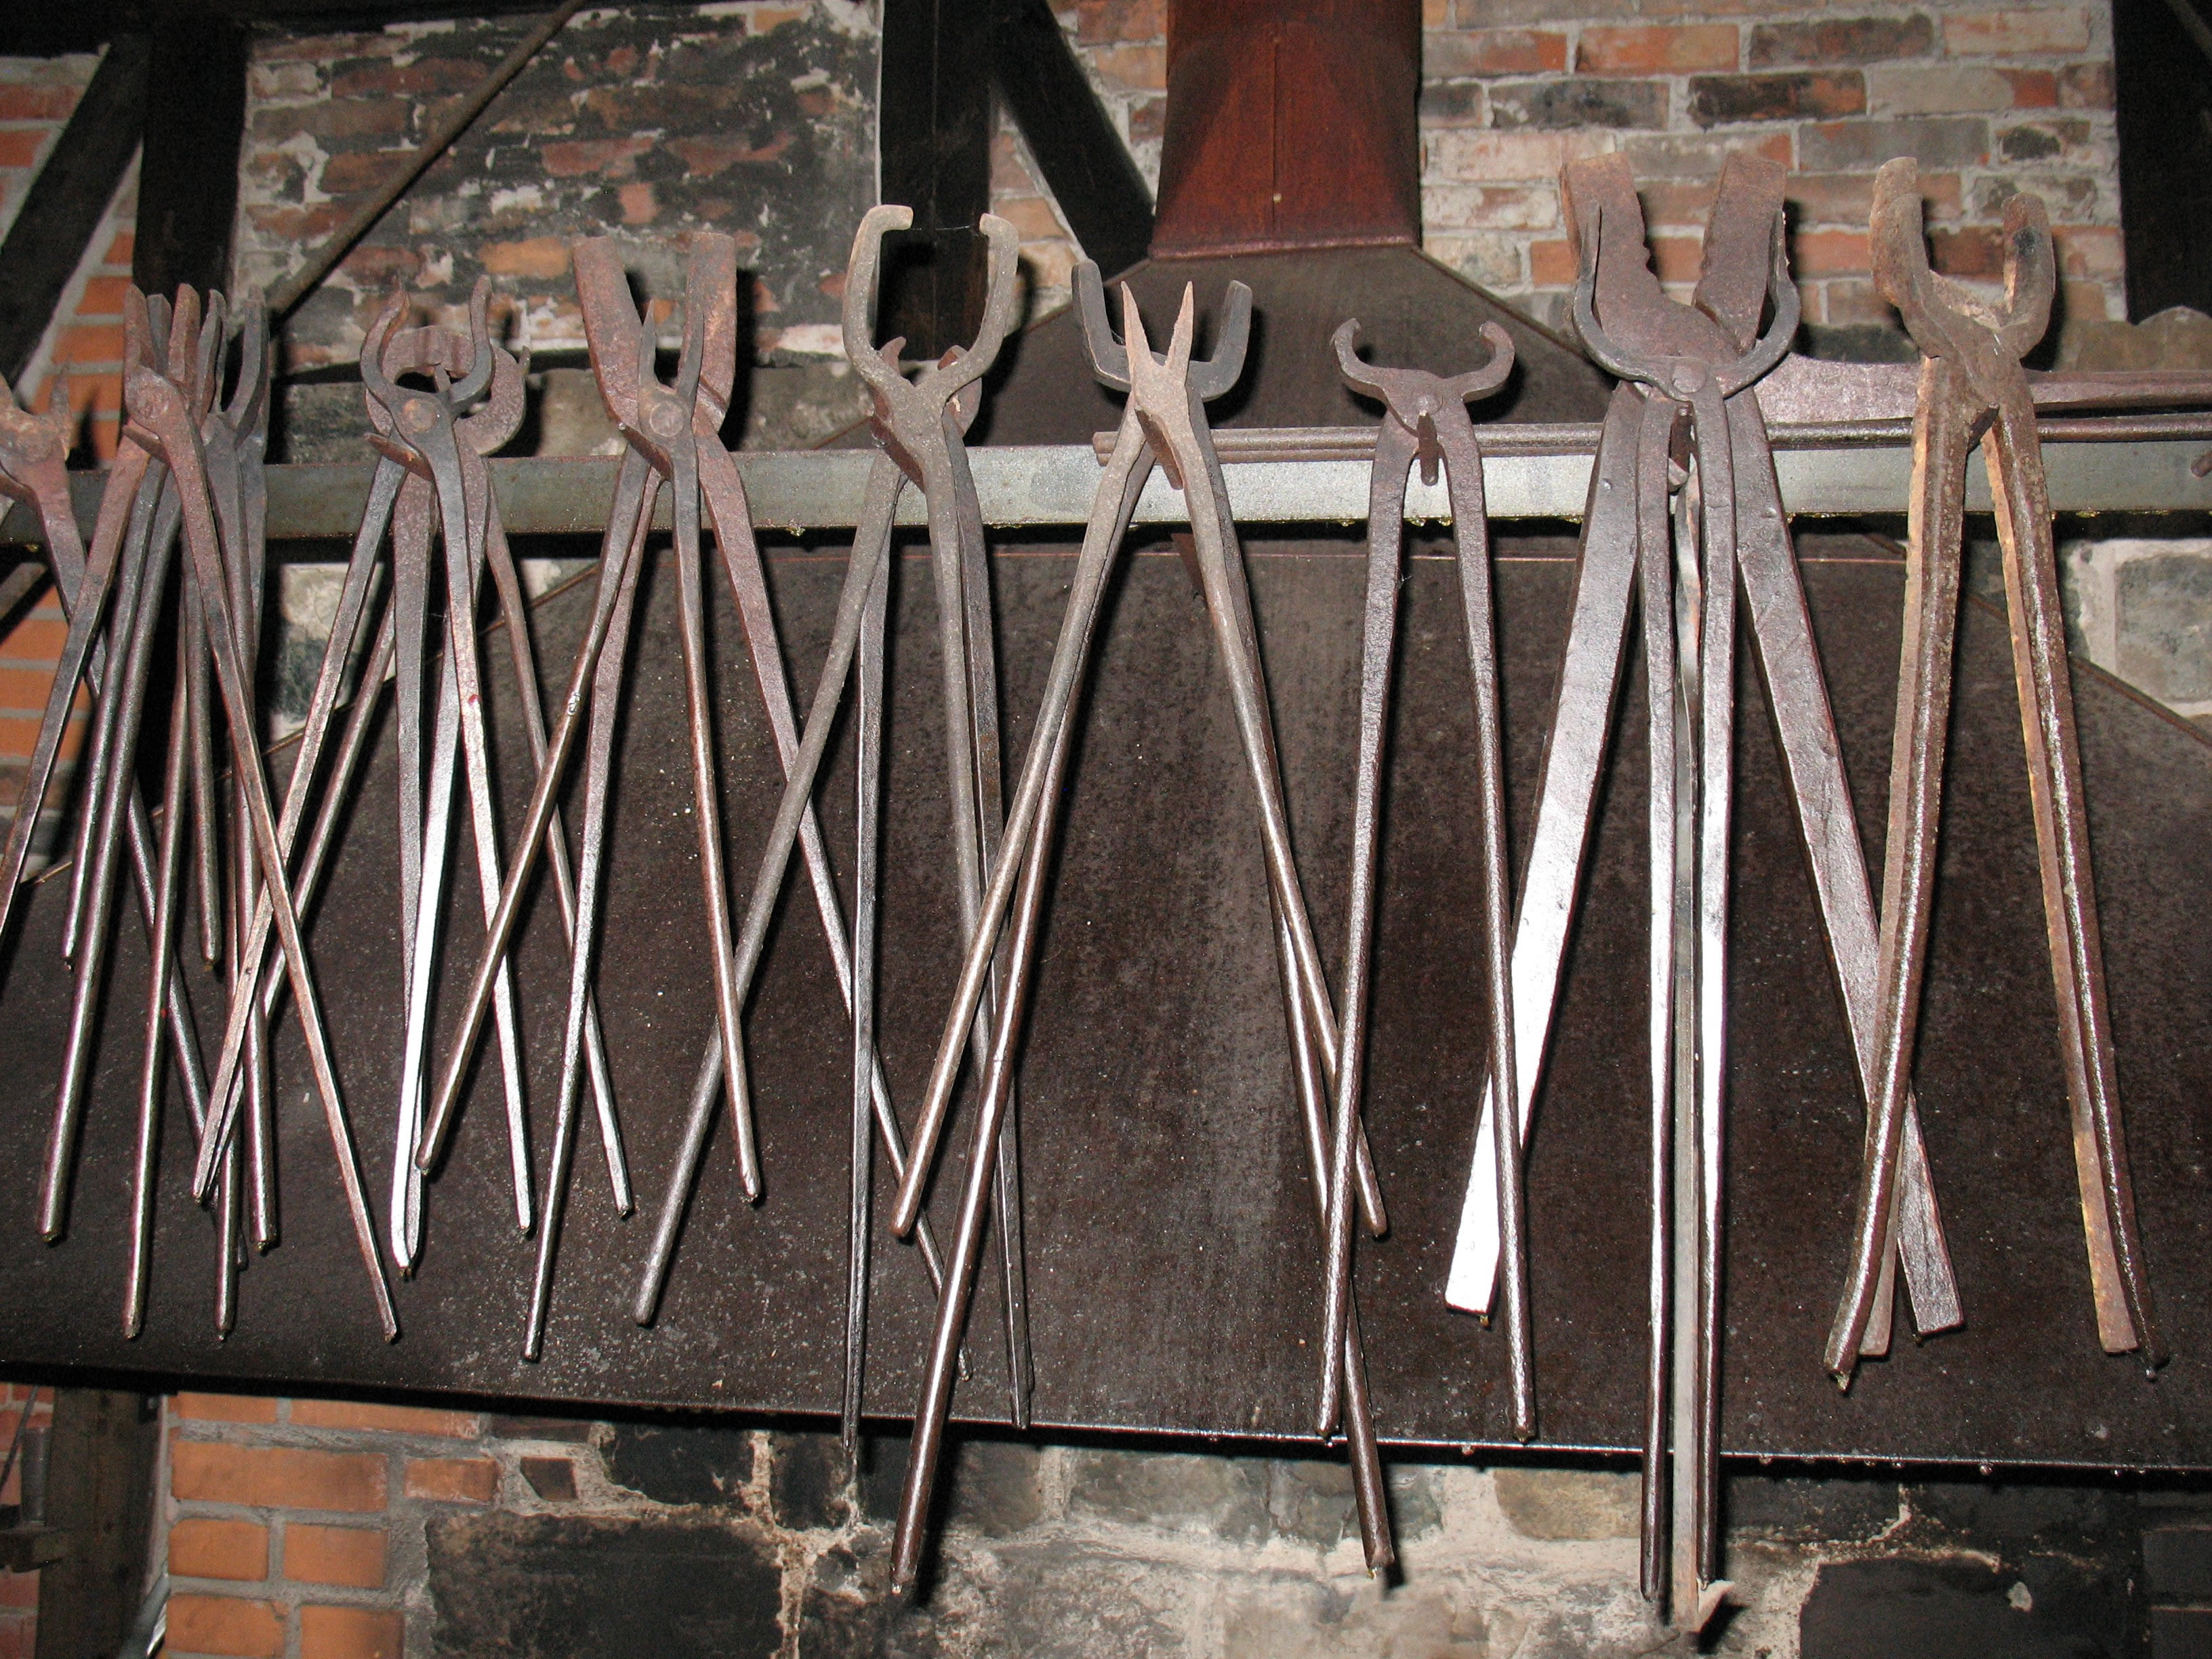 Early Iron Workers' Tools